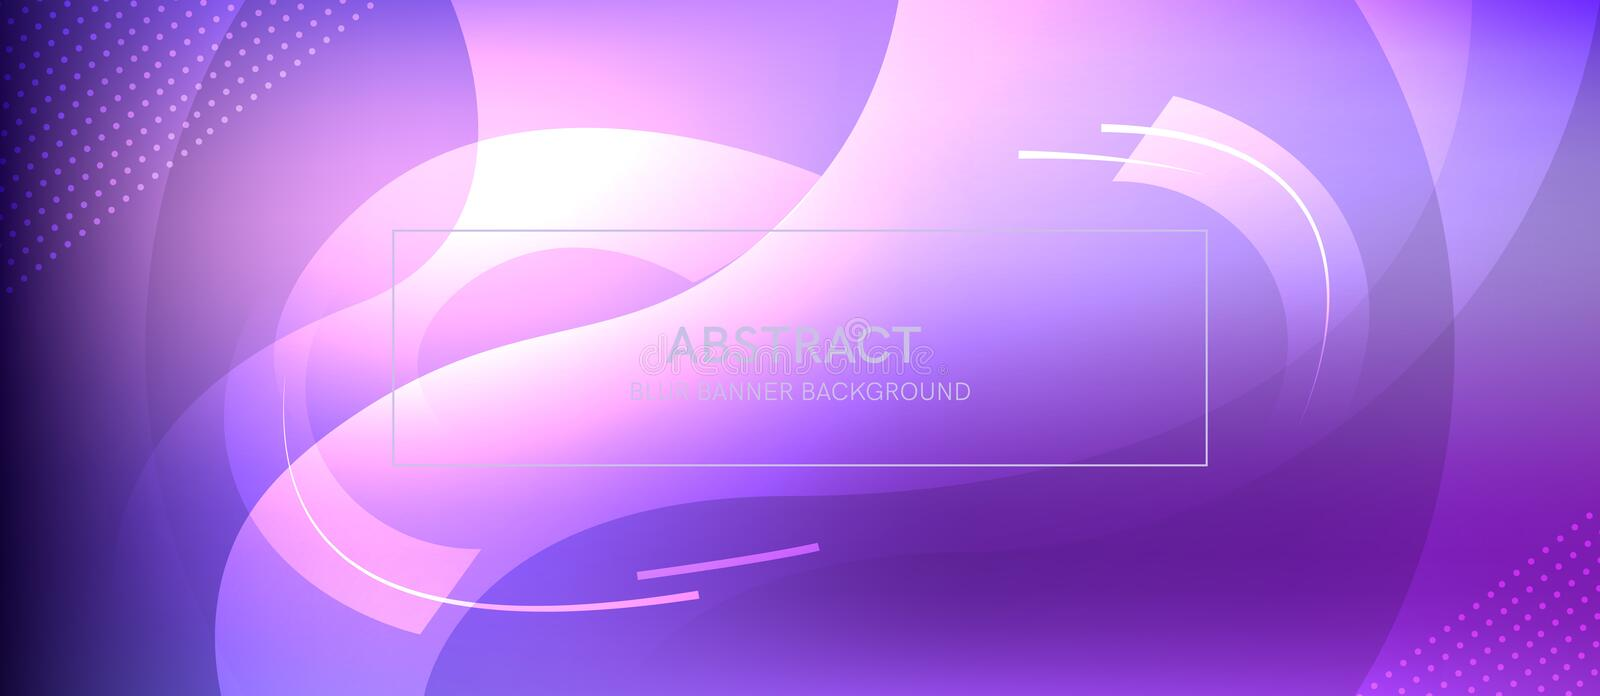 Abstract banner with a gradient shapes and blur vector illustration